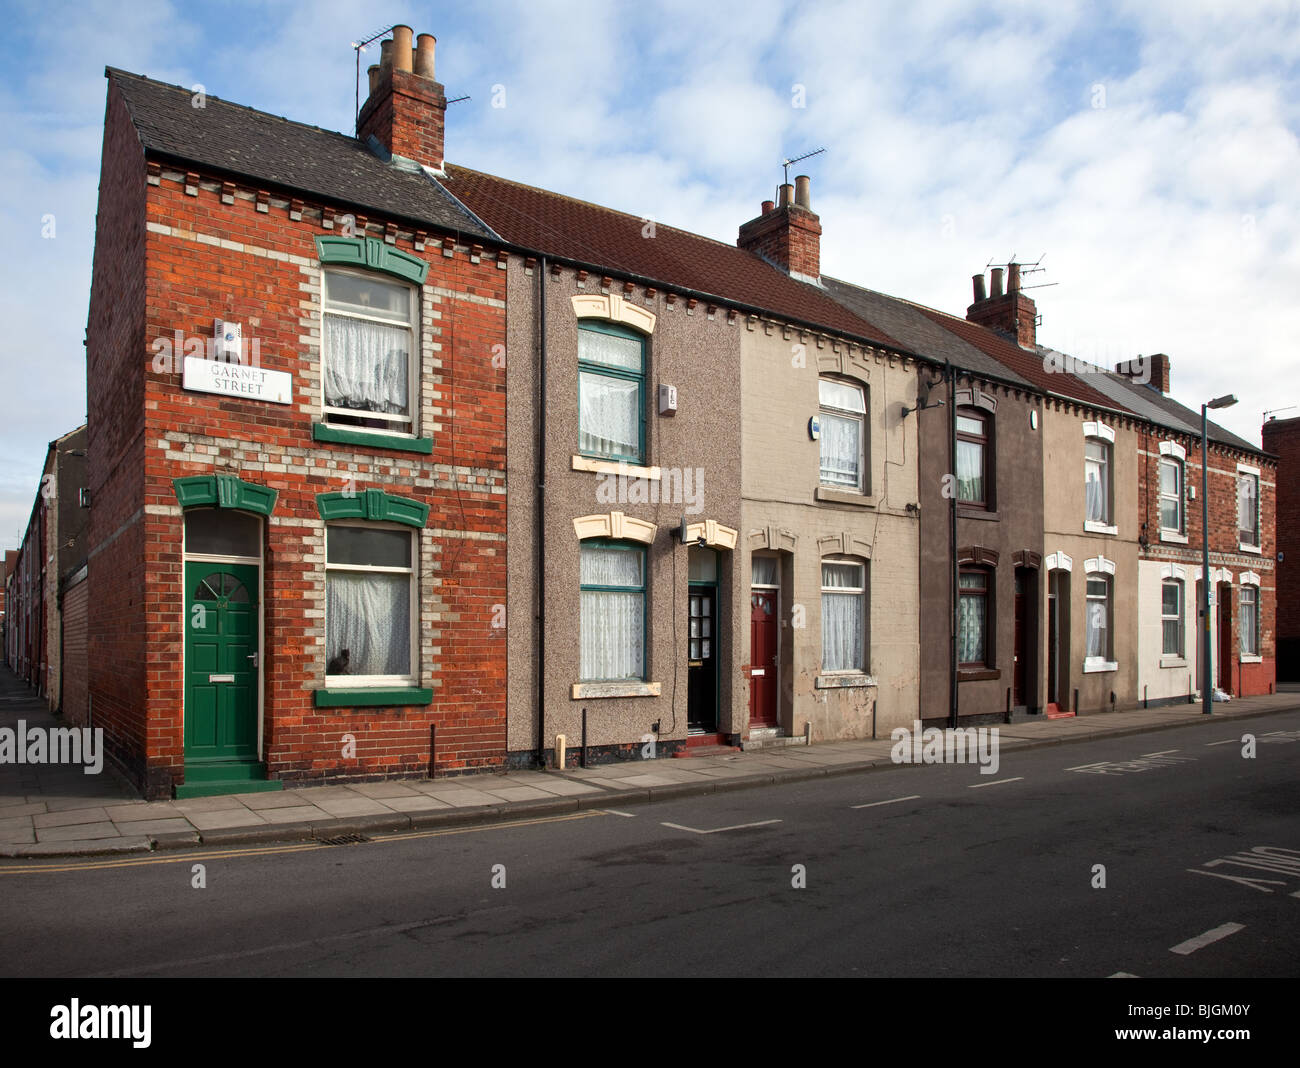 Yorkshire Terrace: Garnet Street Red Brick, Two-up Two-down, Small Terraced